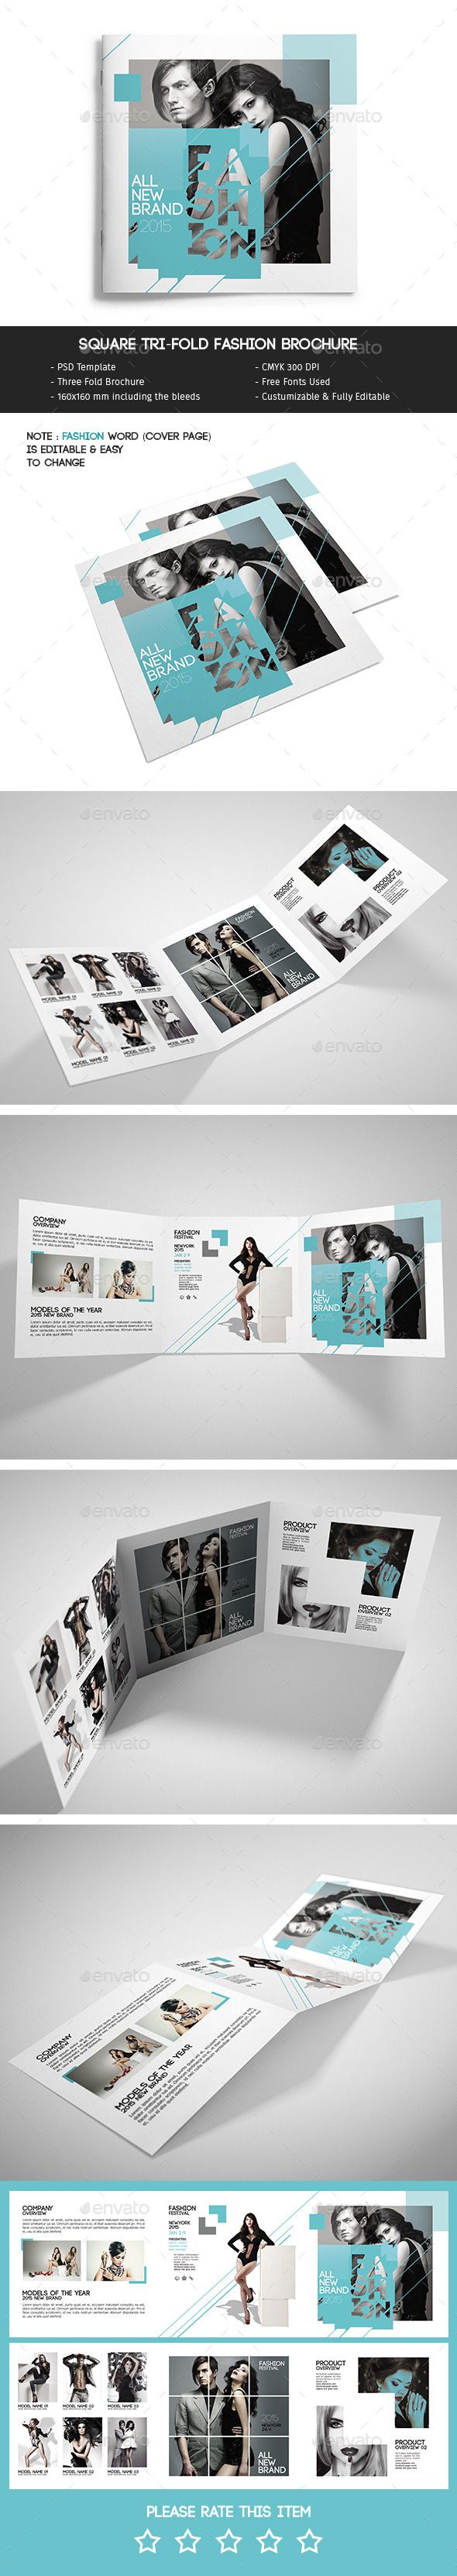 Square TriFold Fashion Brochure — Photoshop PSD #square brochure #clean • Available here → https://graphicriver.net/item/square-trifold-fashion-brochure/11587366?ref=pxcr